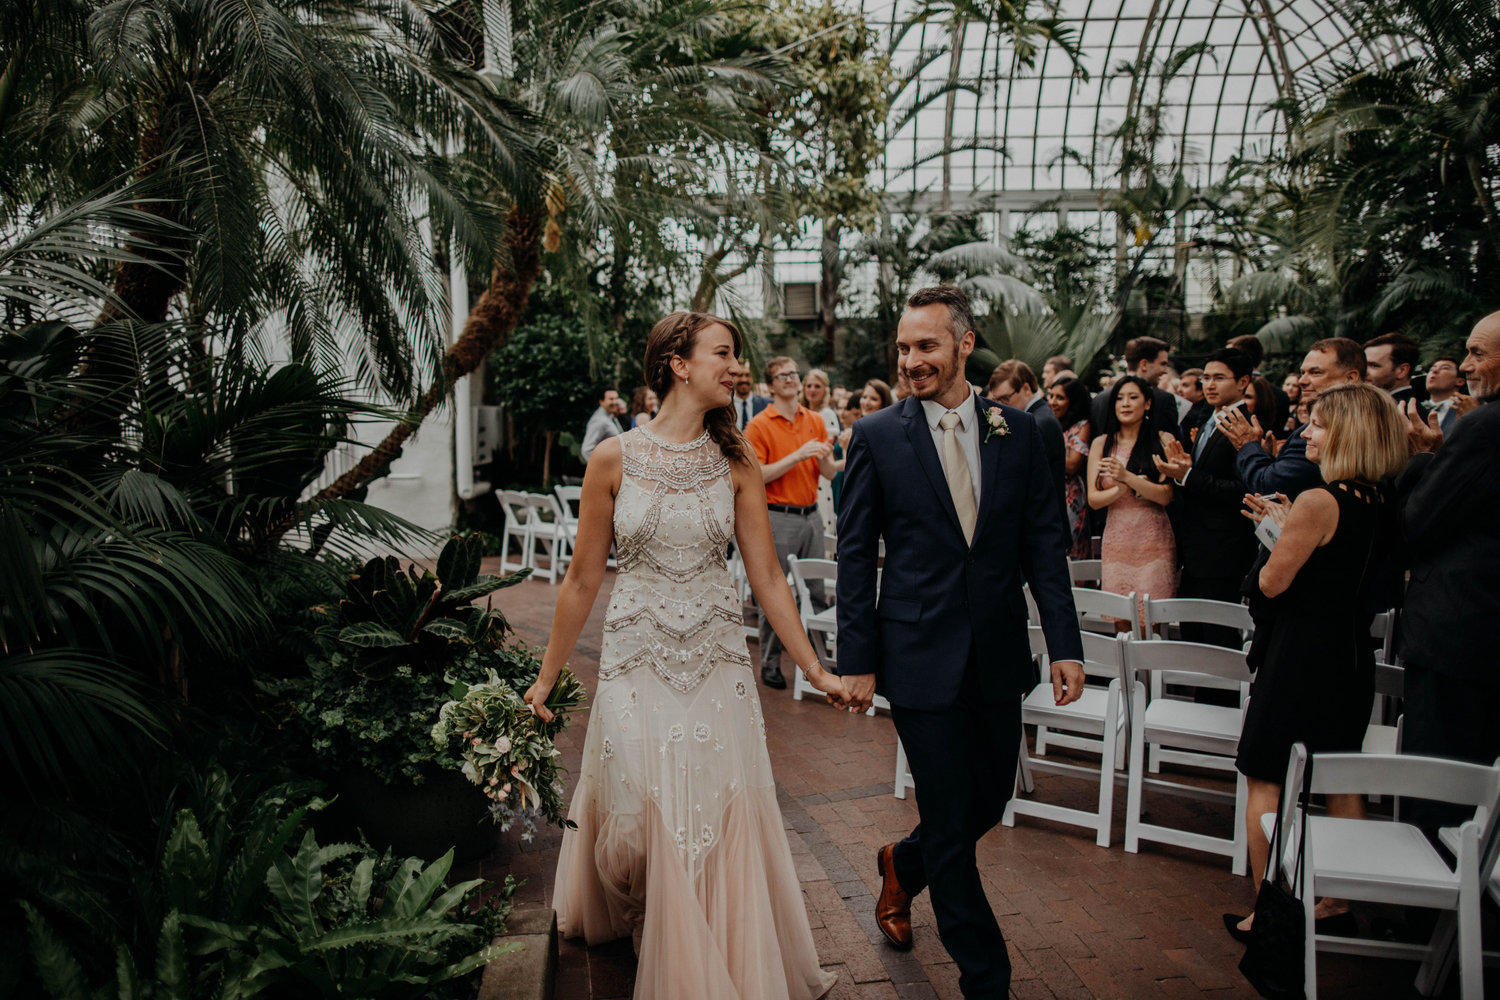 franklin+park+conservatory+wedding+columbus+ohio+wedding+photographer+grace+e+jones+photography229.jpg